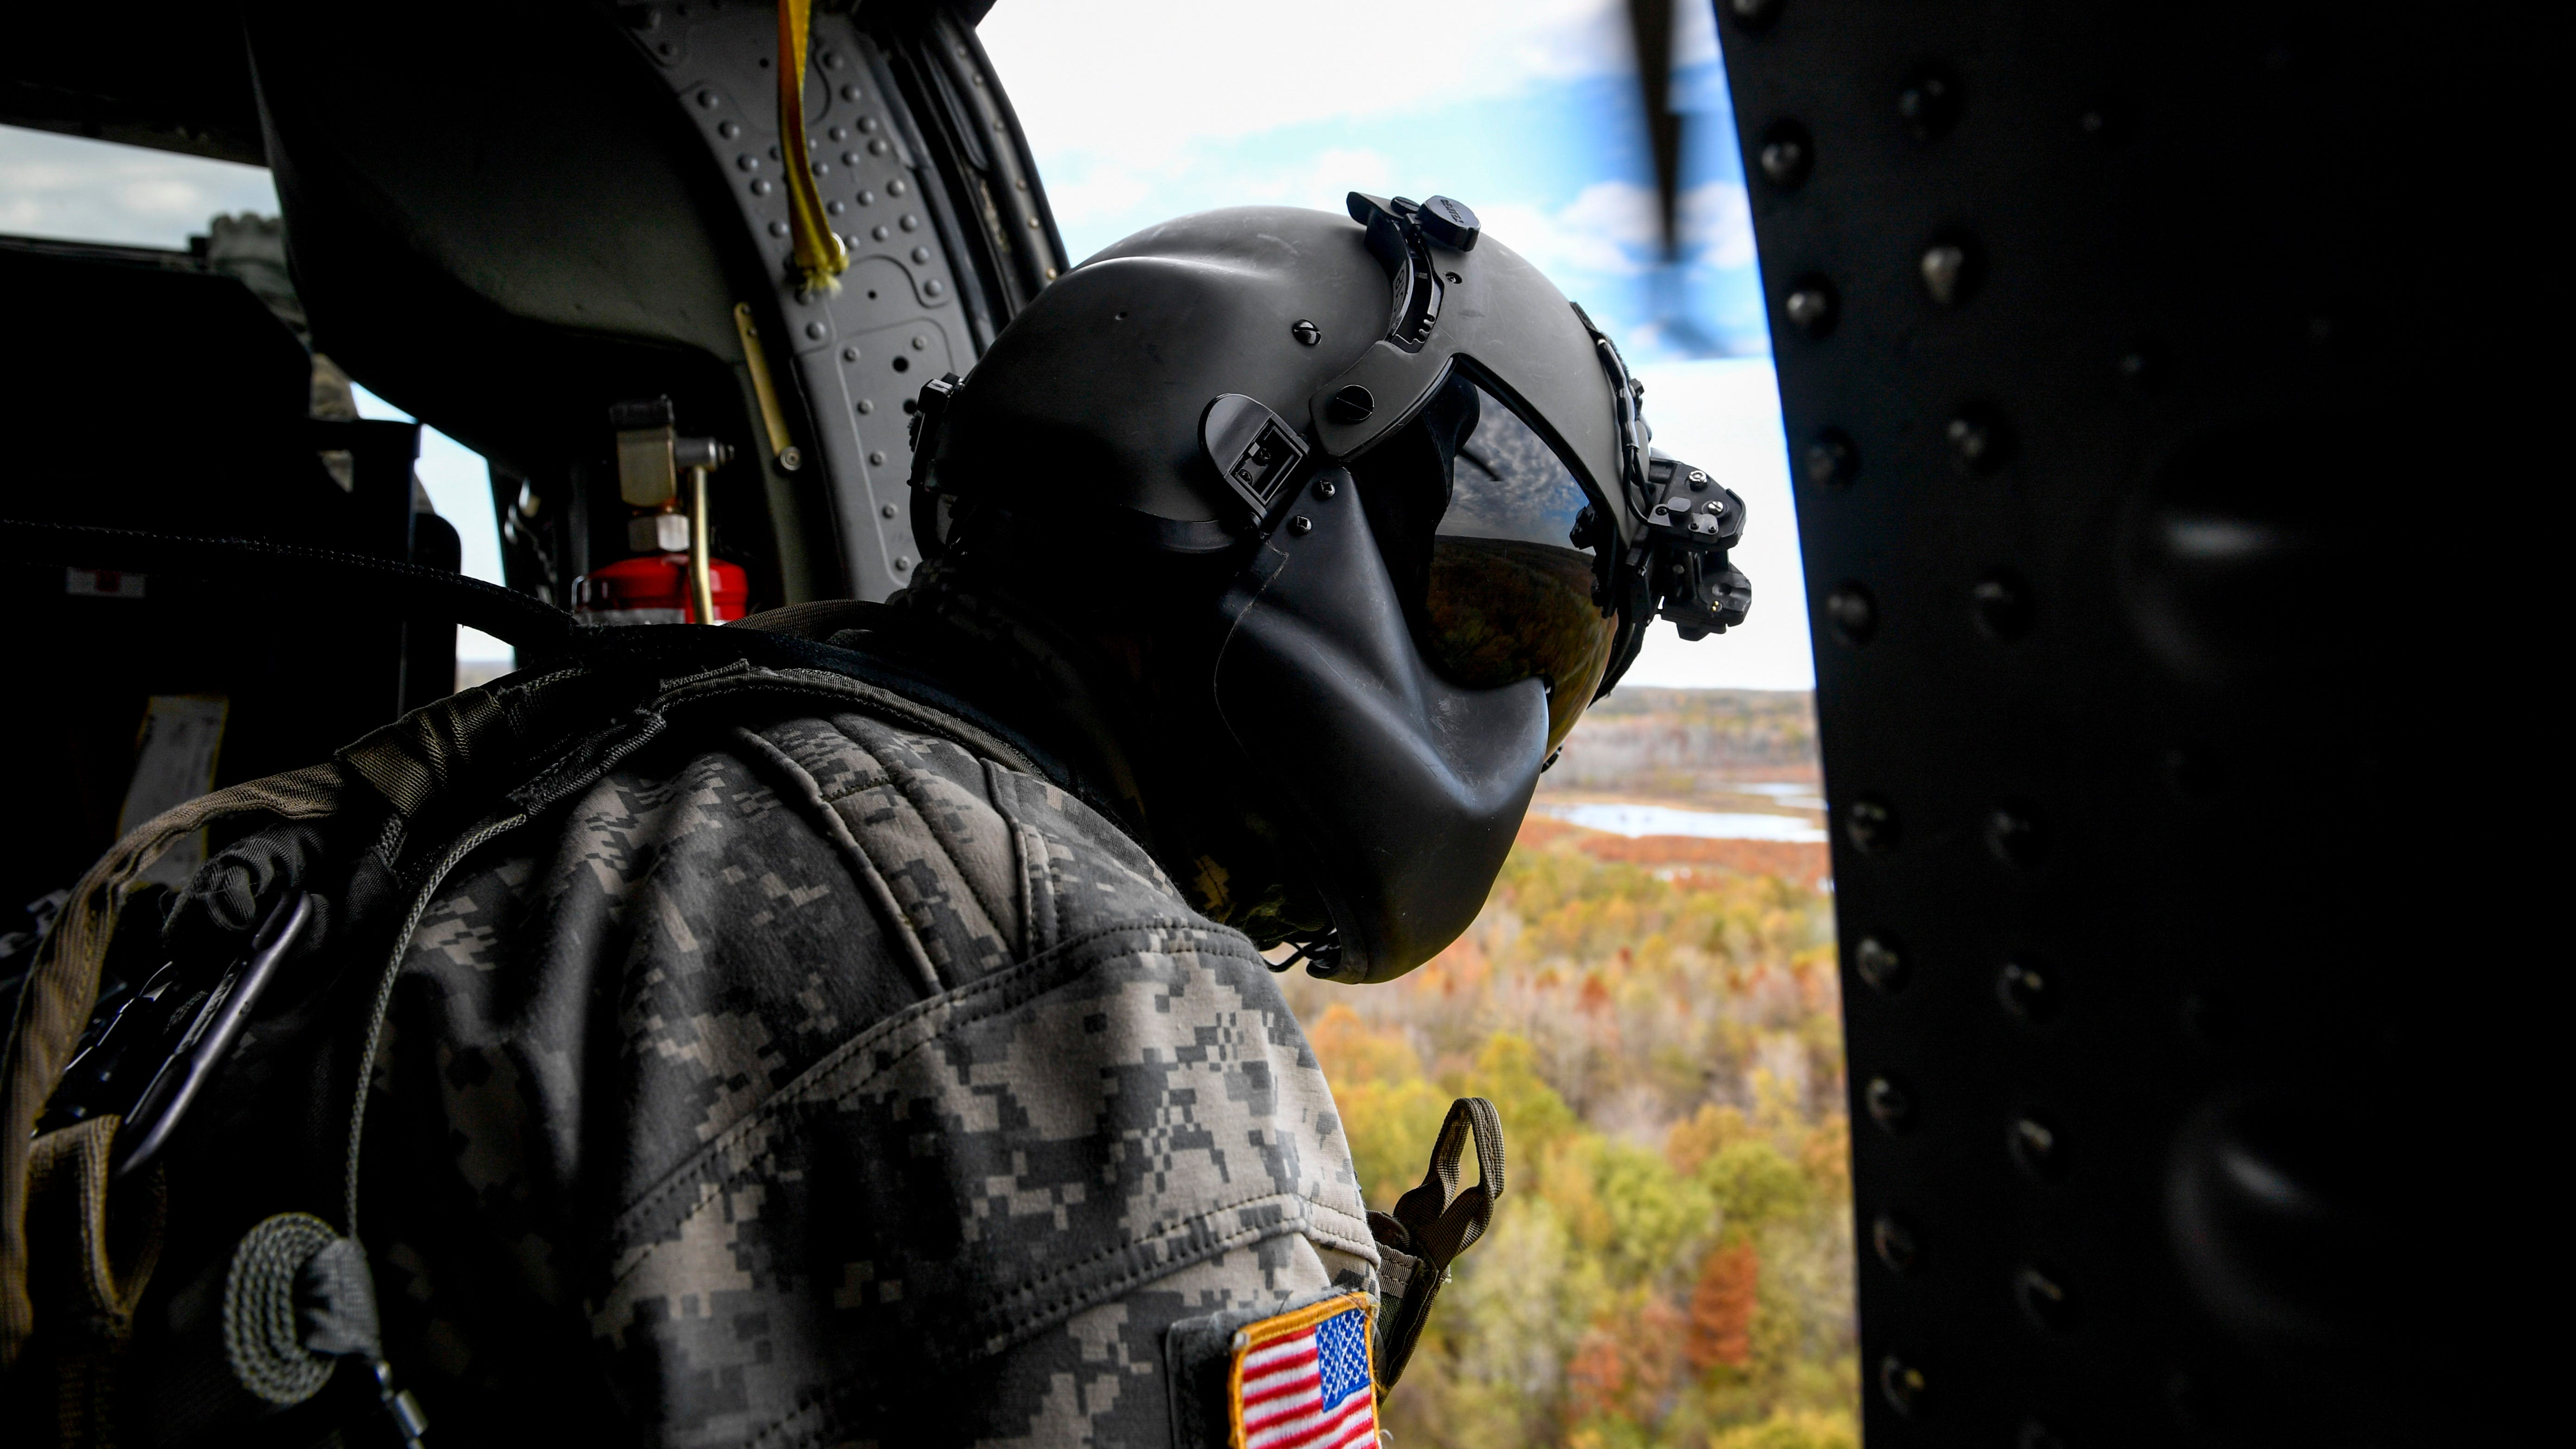 A National Guardsmen leans out the window of a helicopter during the annual Bosslift event put on by Employer Support of the Guard and Reserve (ESGR) and the Tennessee National Guard at Army Aviation Facility in Jackson, Tenn., on Thursday, Nov. 8, 2018.